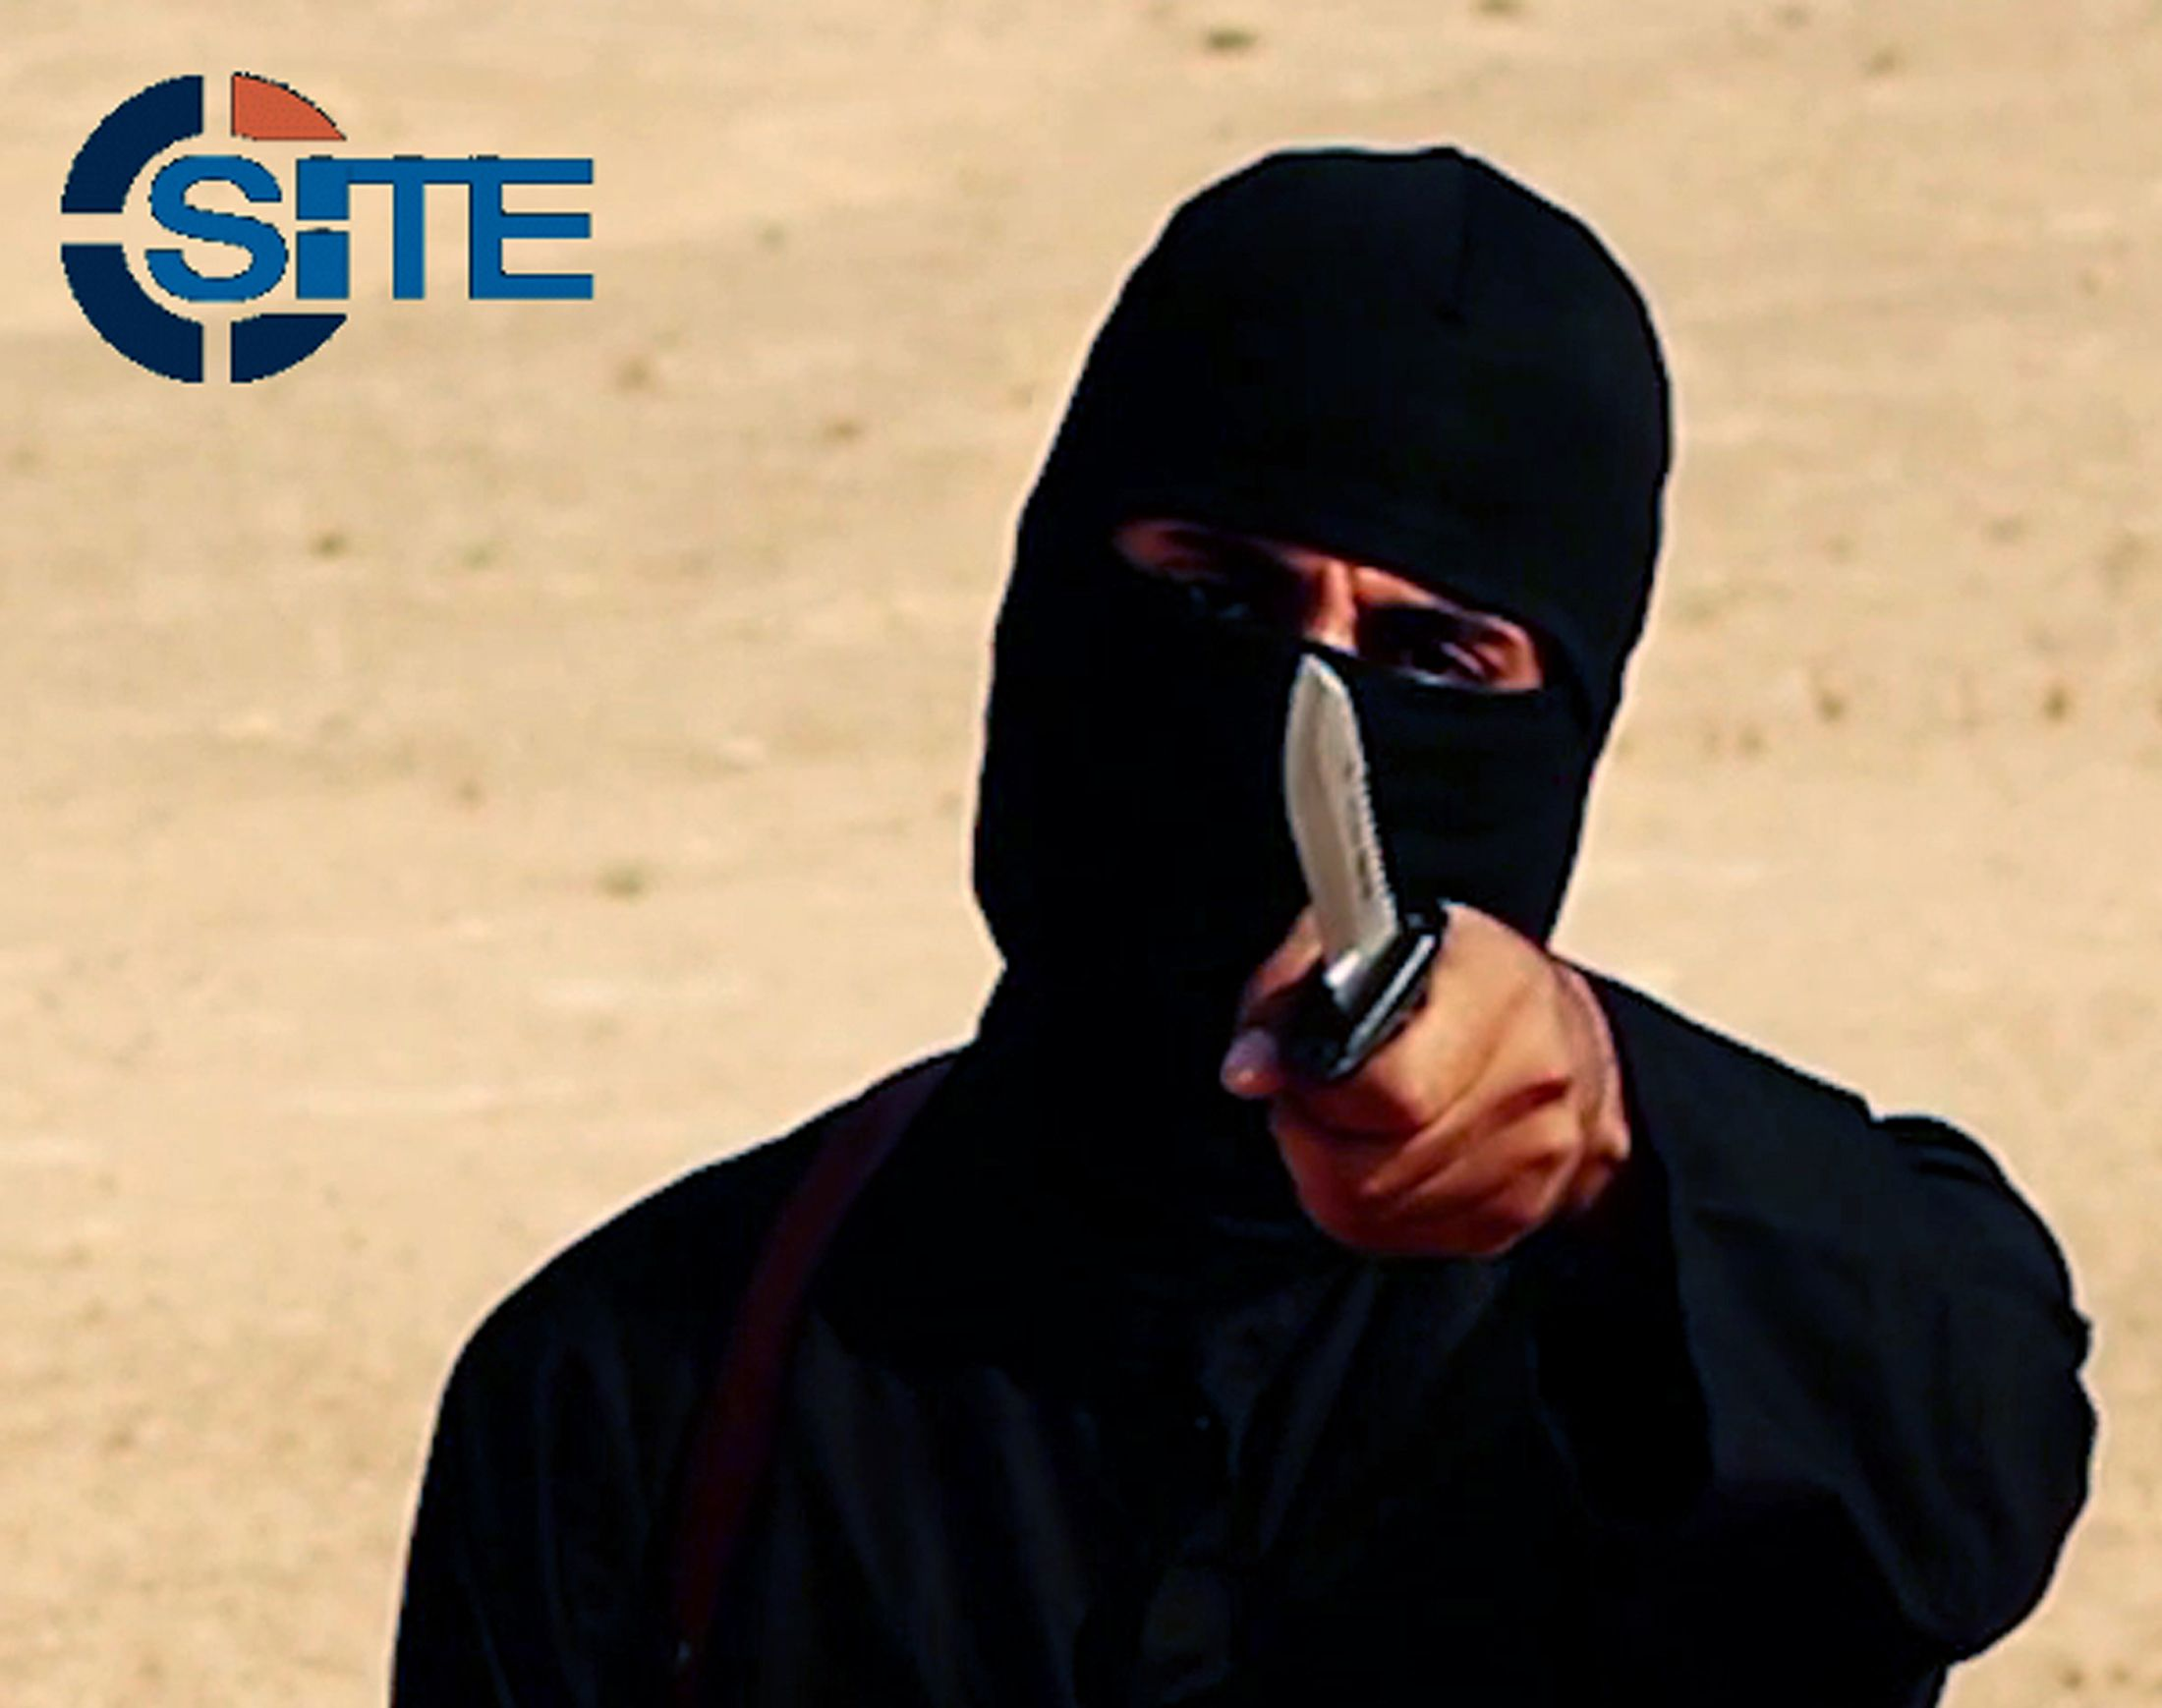 U.K. investigating second Jihadi John